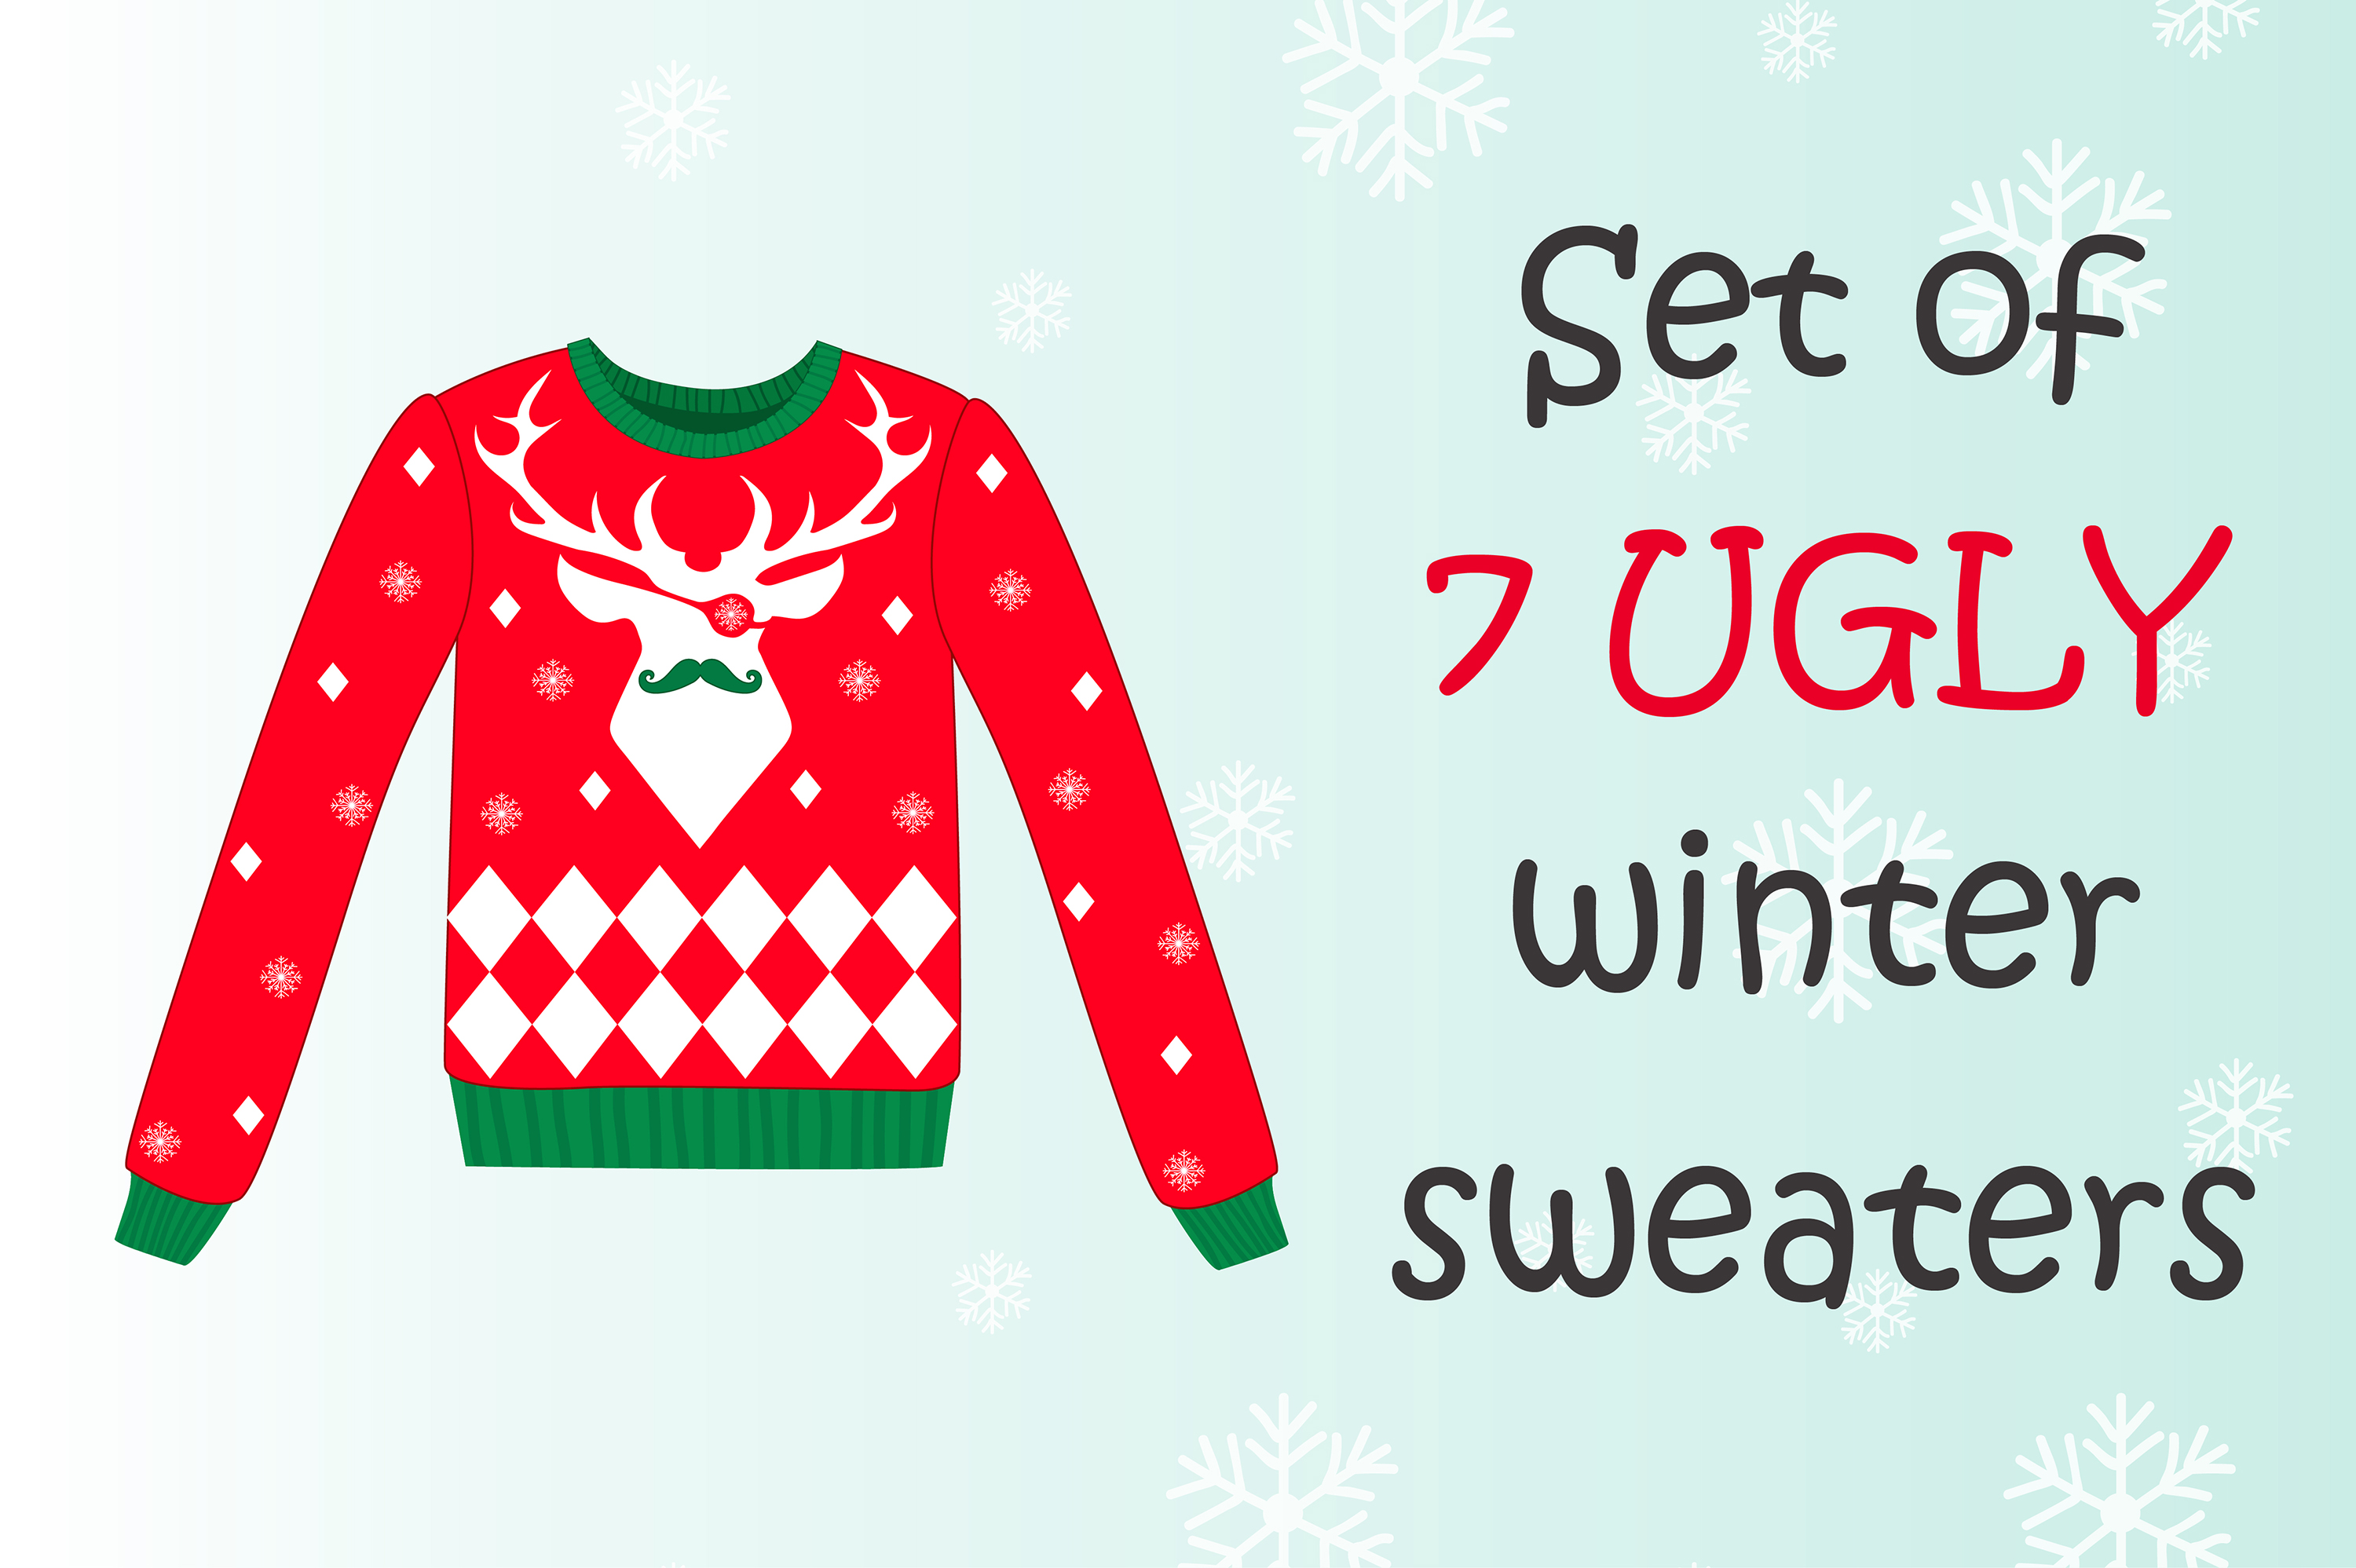 Set of 7 ugly winter sweaters example image 1